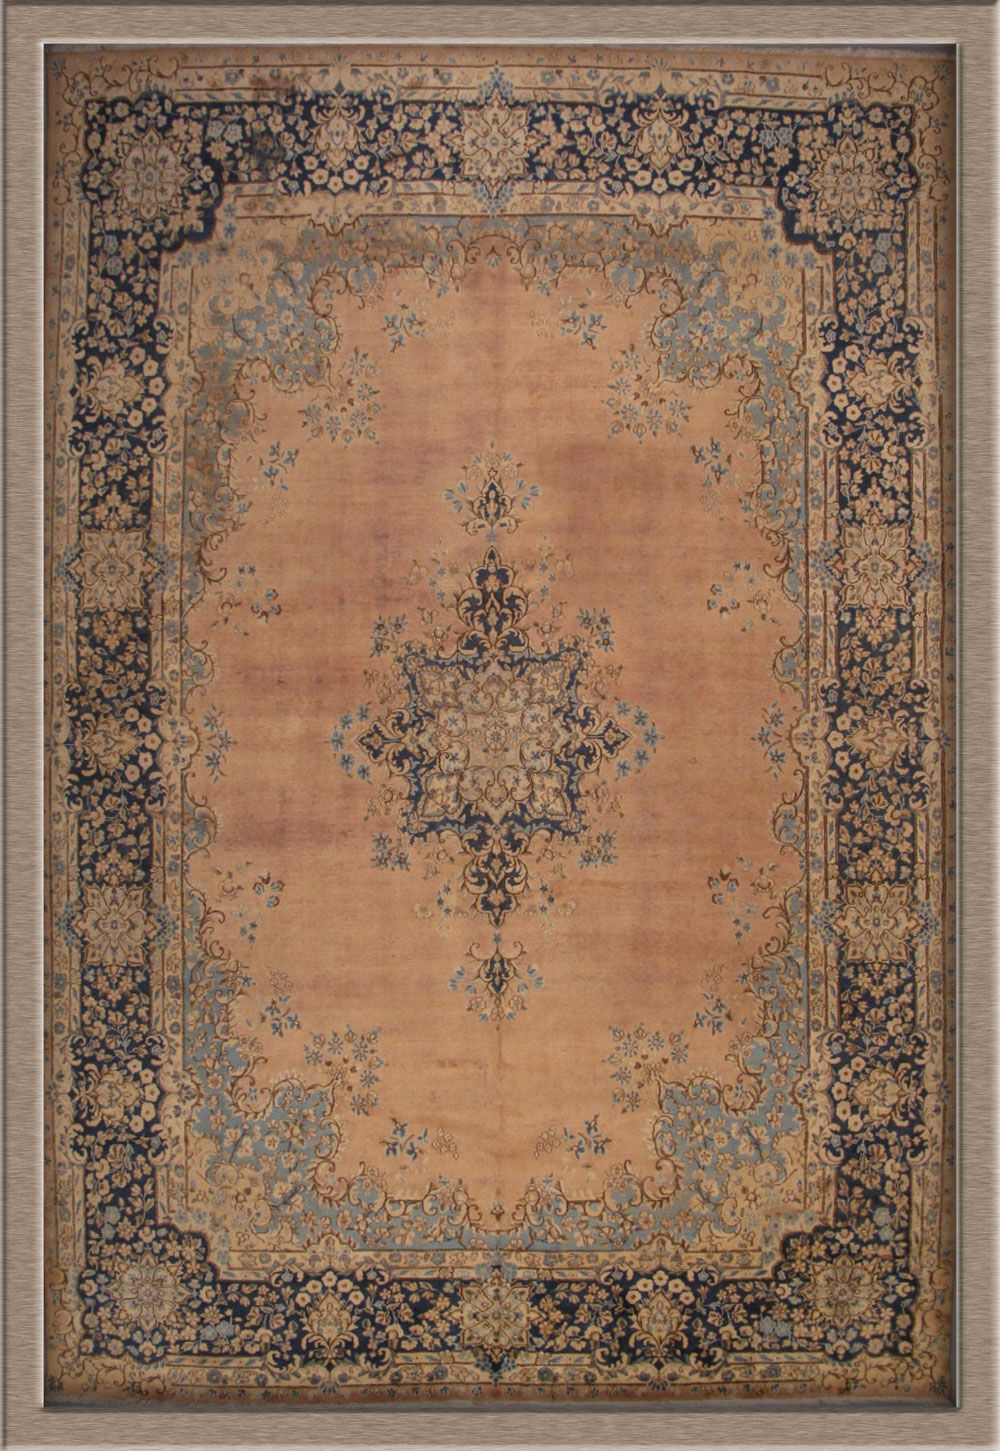 Interior The Best High Quality Machine Made Large Oriental Rug Design Ideas With Trend Old